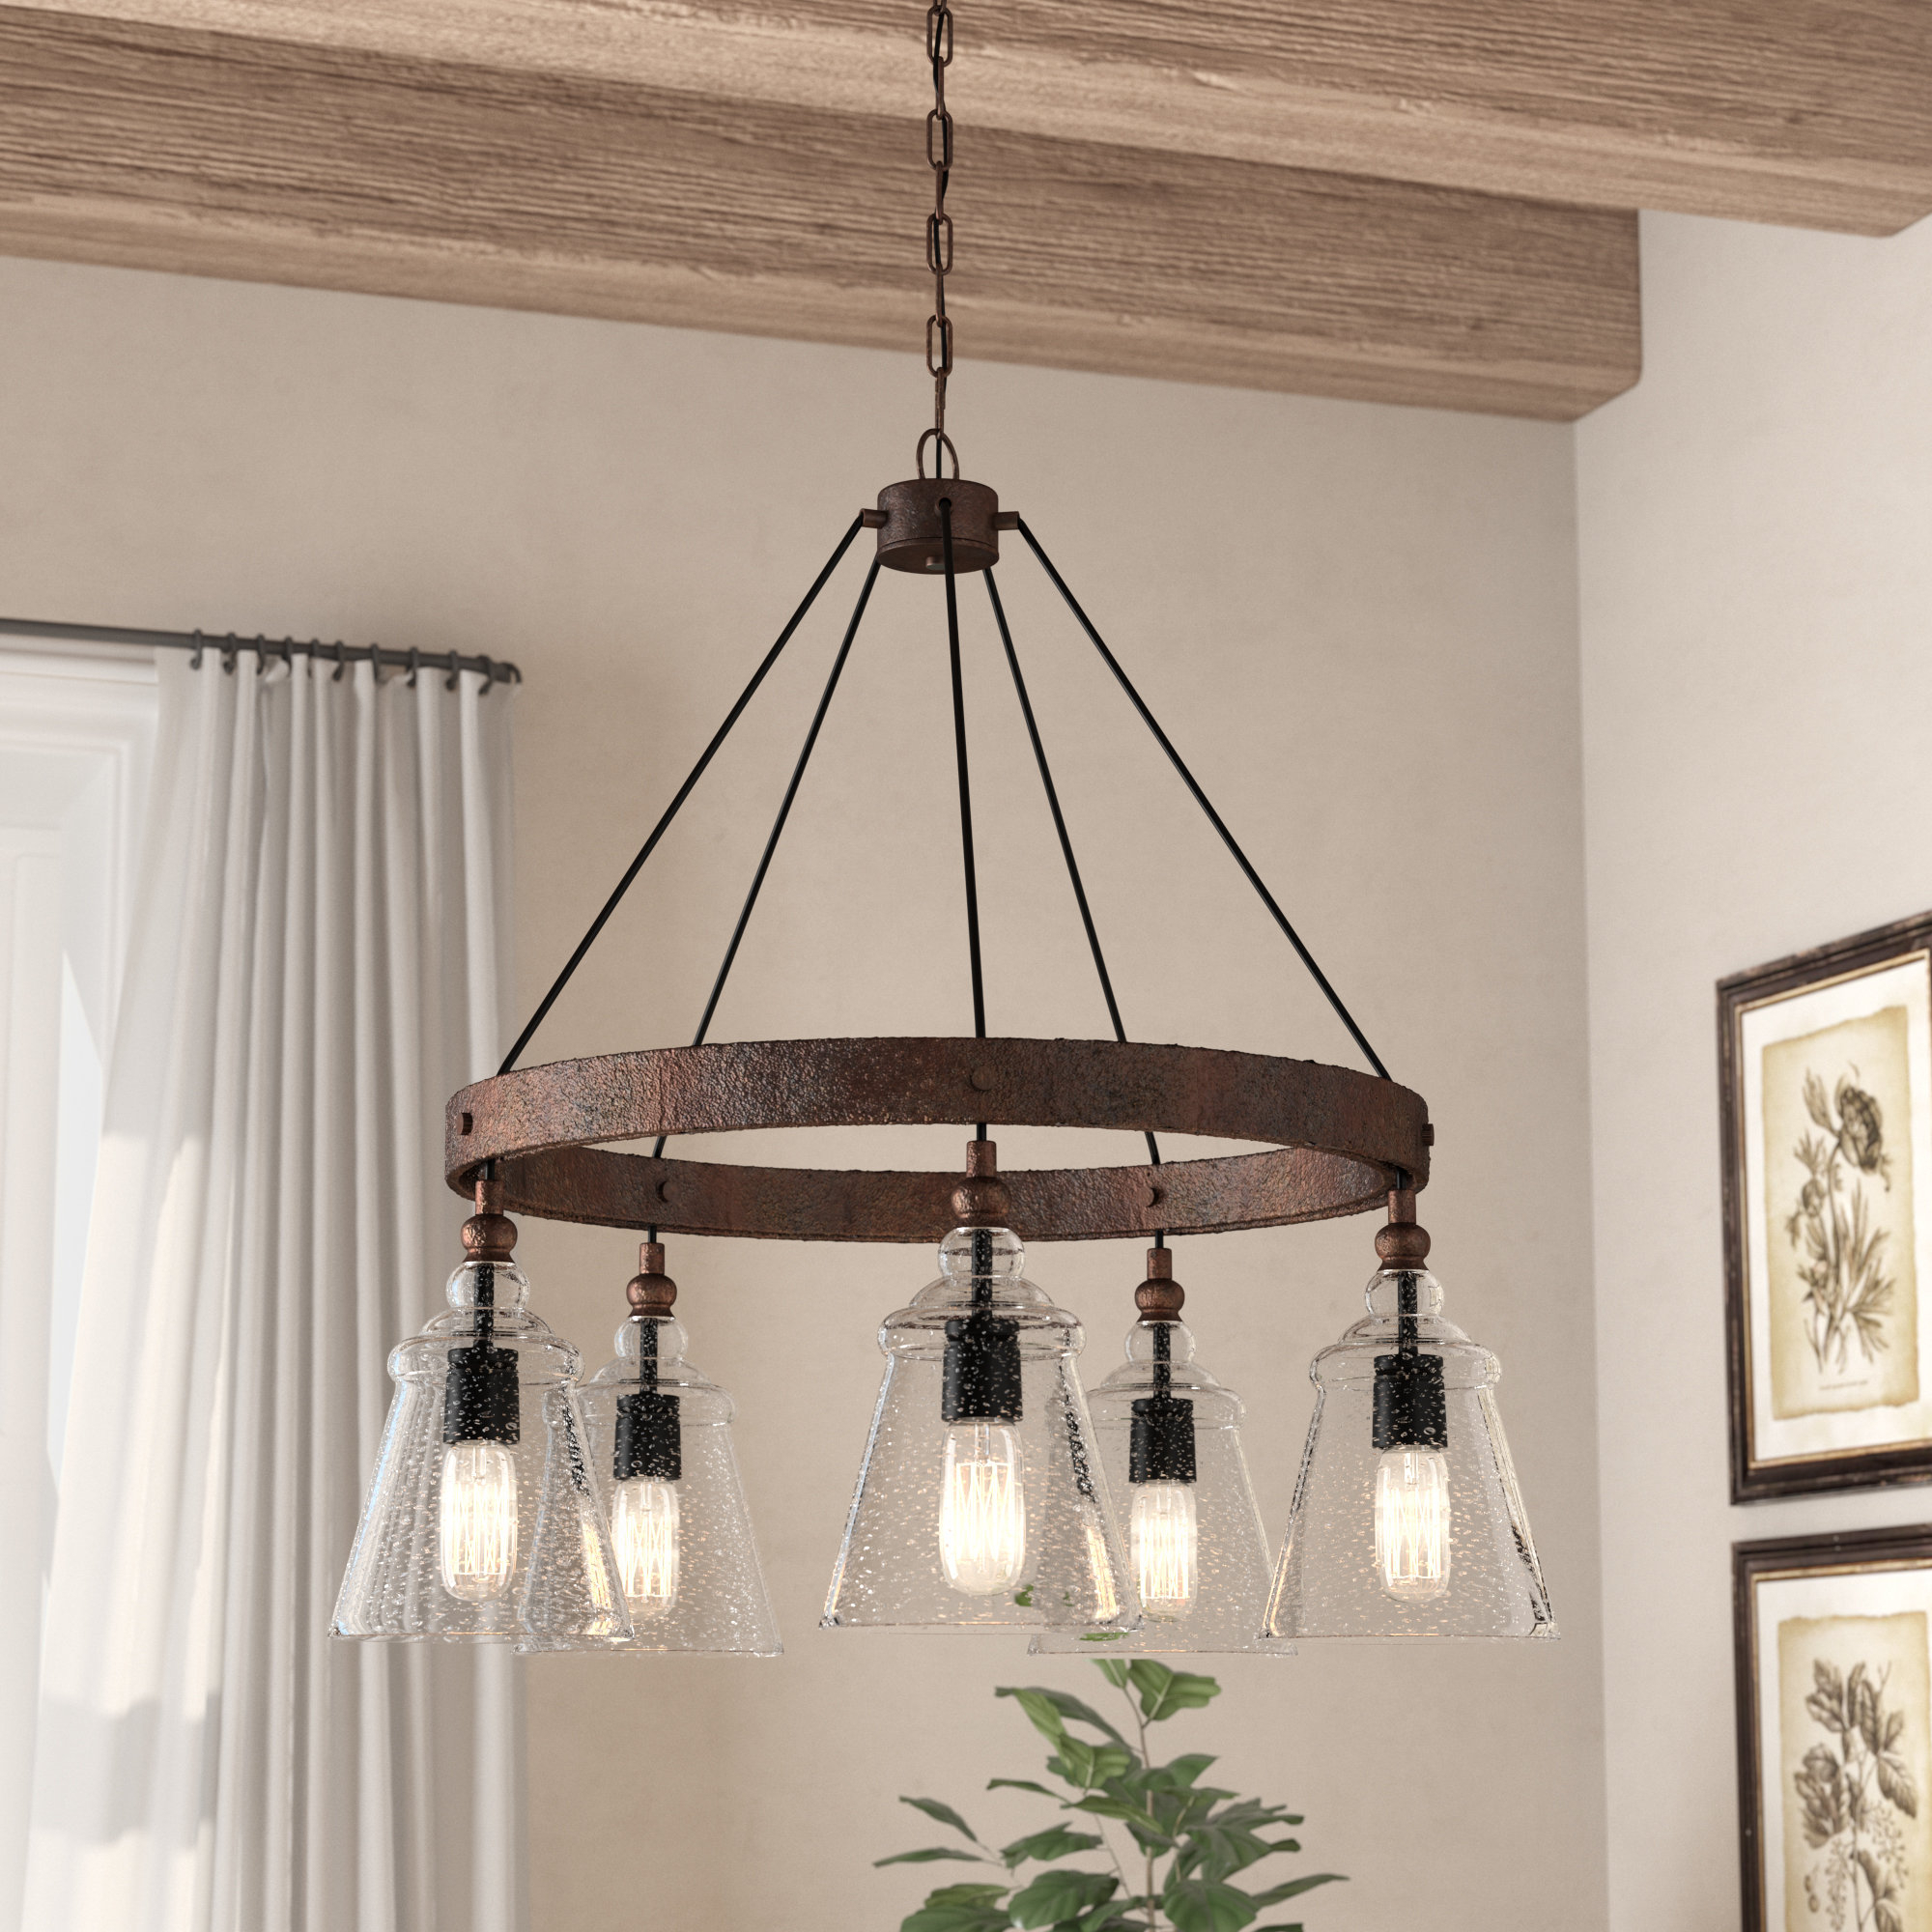 Famous Shayla 12 Light Wagon Wheel Chandeliers With Expert Wagon Wheel Chandelier Antique Shades Of Light (View 19 of 25)